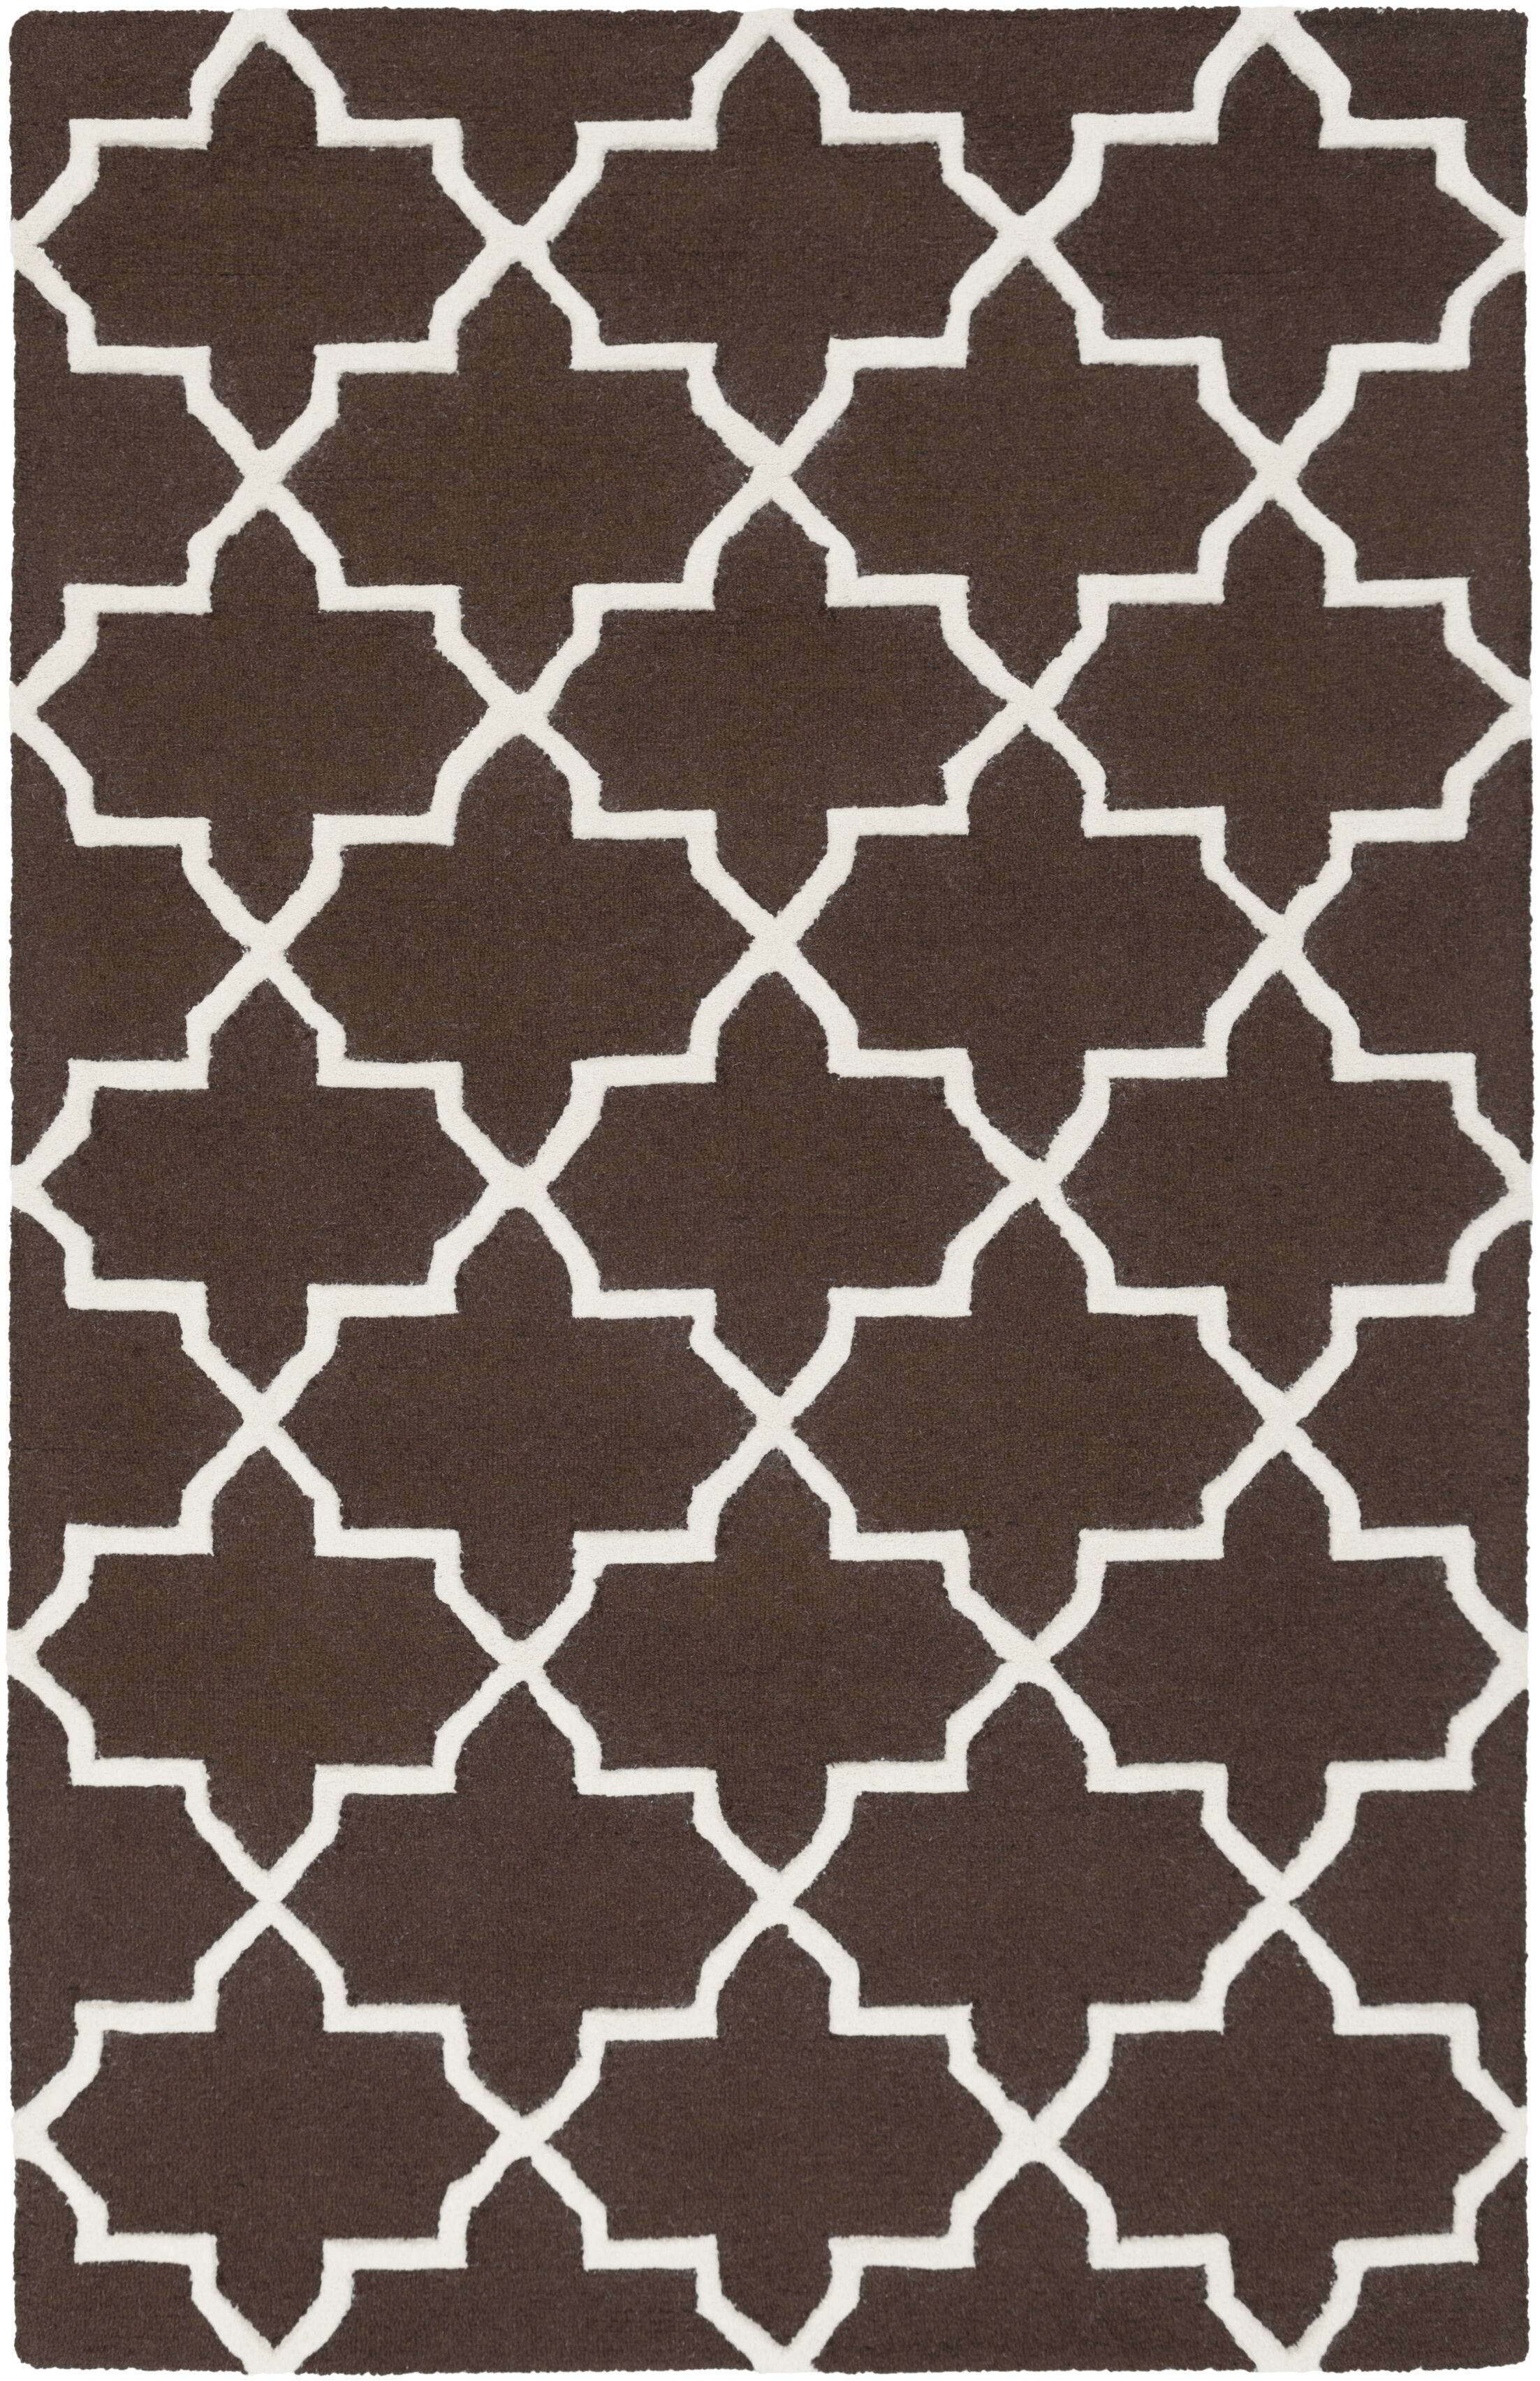 Blaisdell Brown Geometric Keely Area Rug Rug Size: Rectangle 5' x 8'